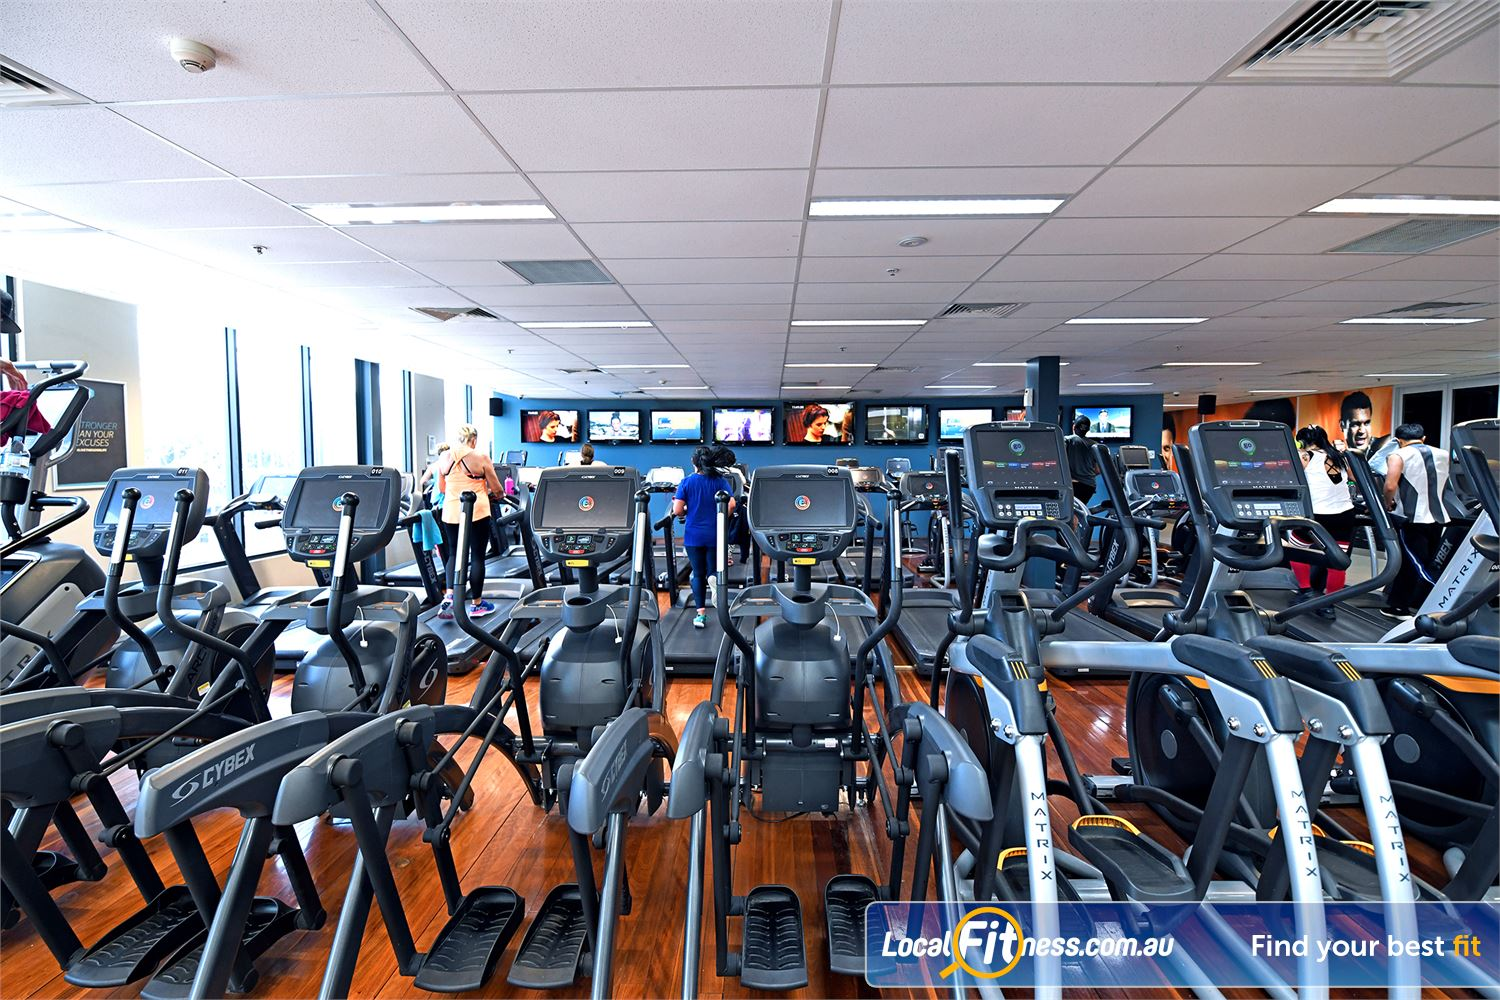 Goodlife Health Clubs Near Werribee South Rows and rows of cardio in our cardio area.